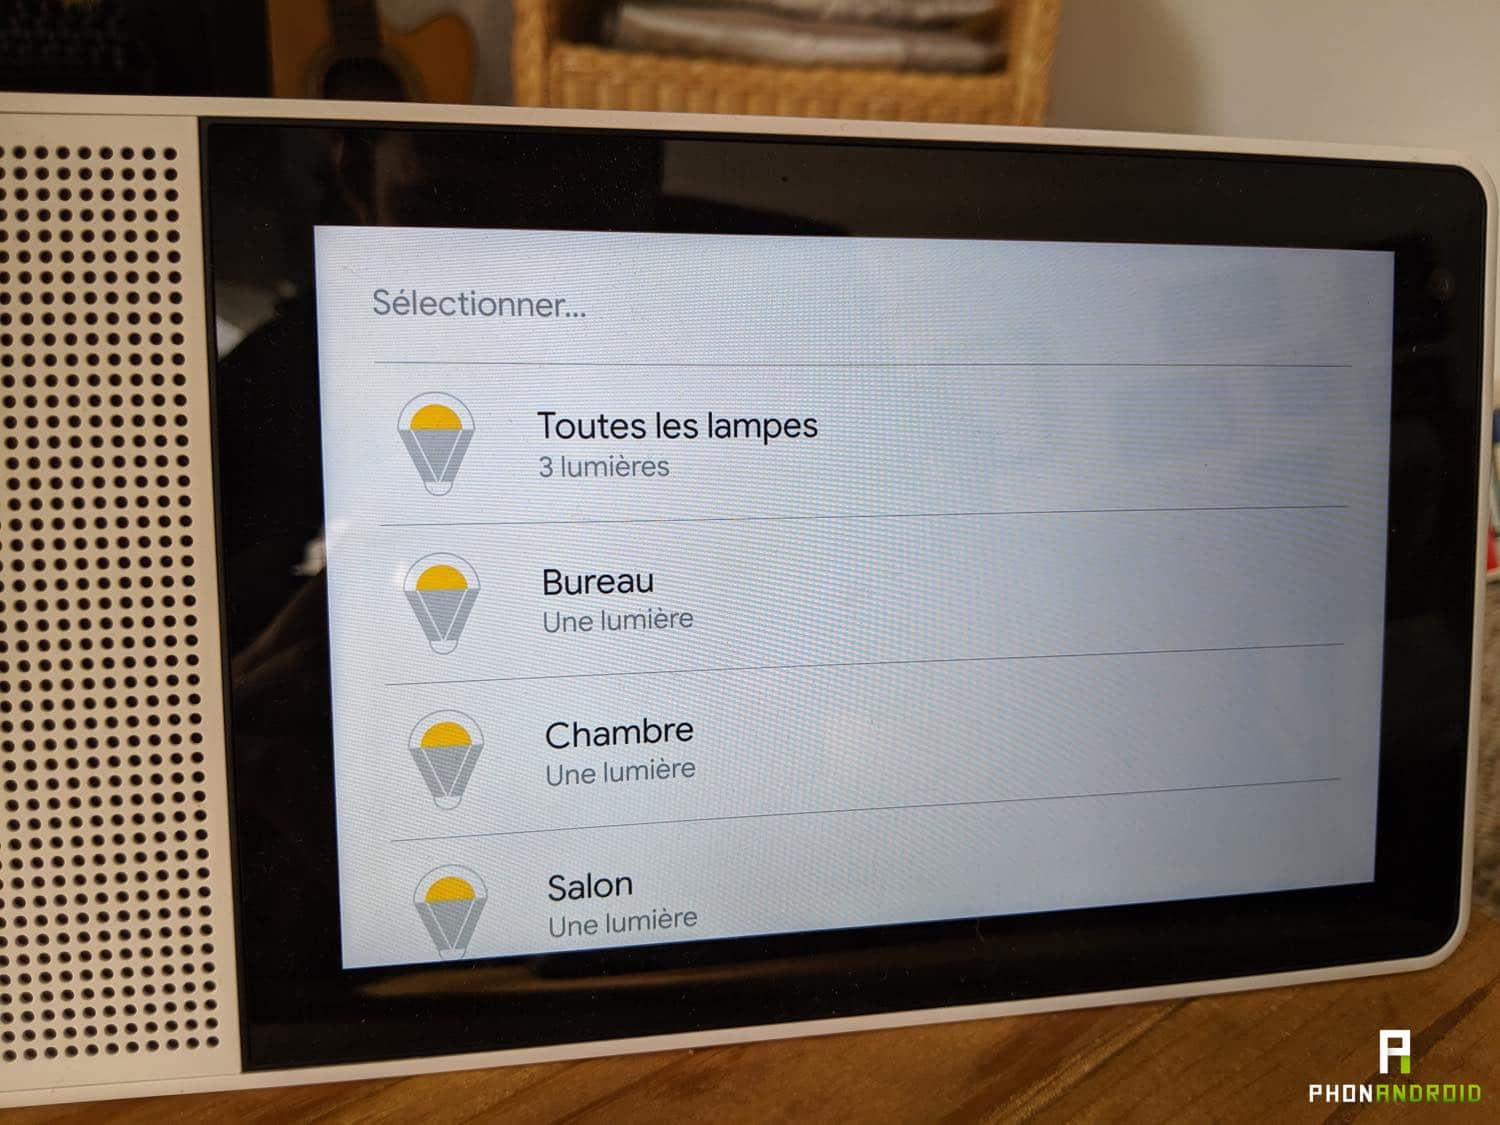 test lenovo smart display lumieres